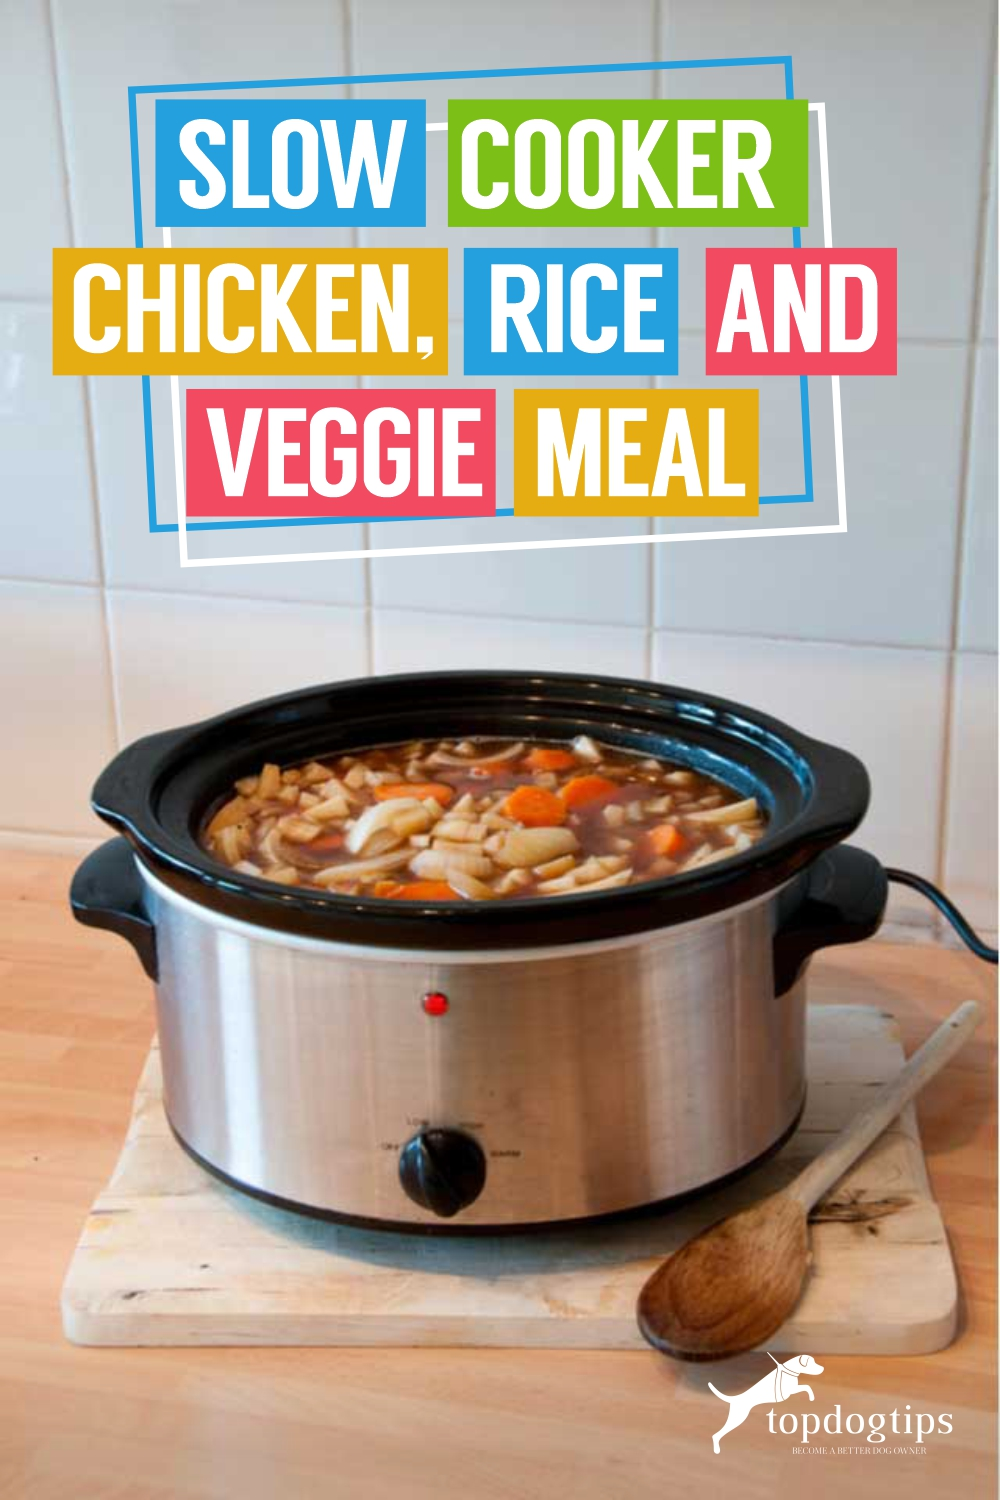 Slow Cooker Chicken, Rice and Veggie Meal